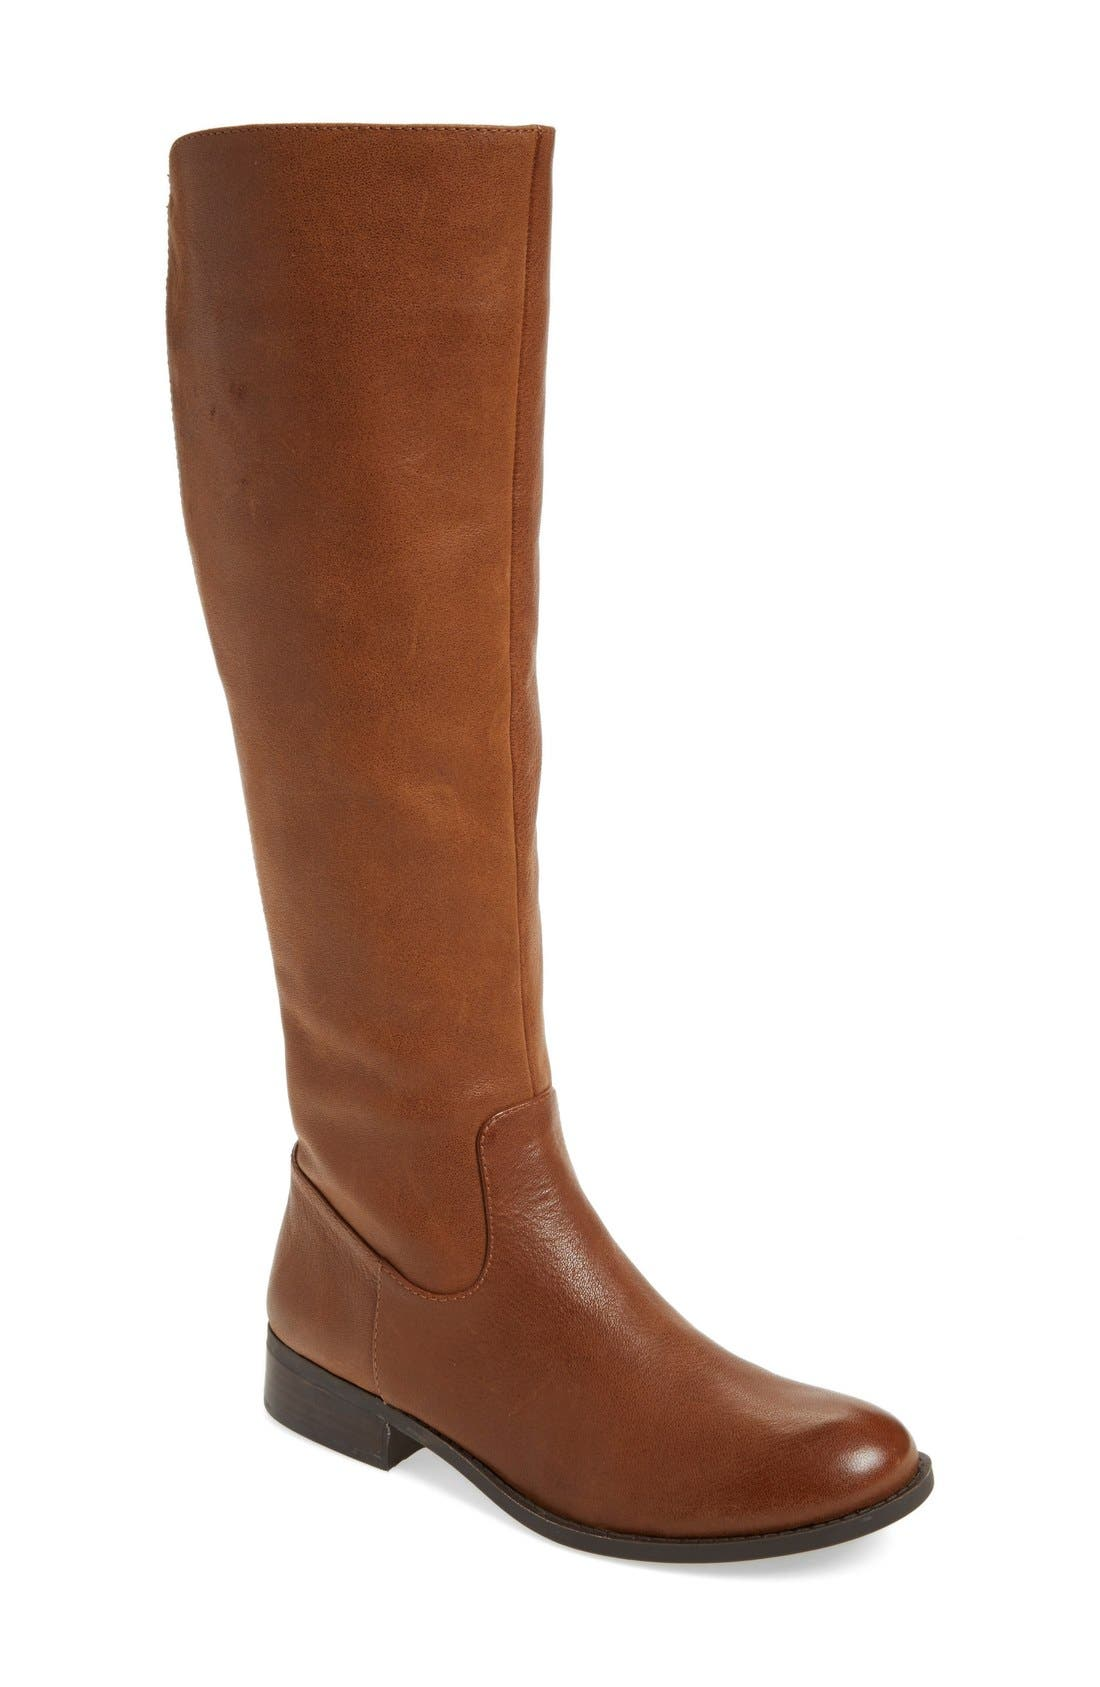 Main Image - Jessica Simpson 'Ressie' Riding Boot (Women)